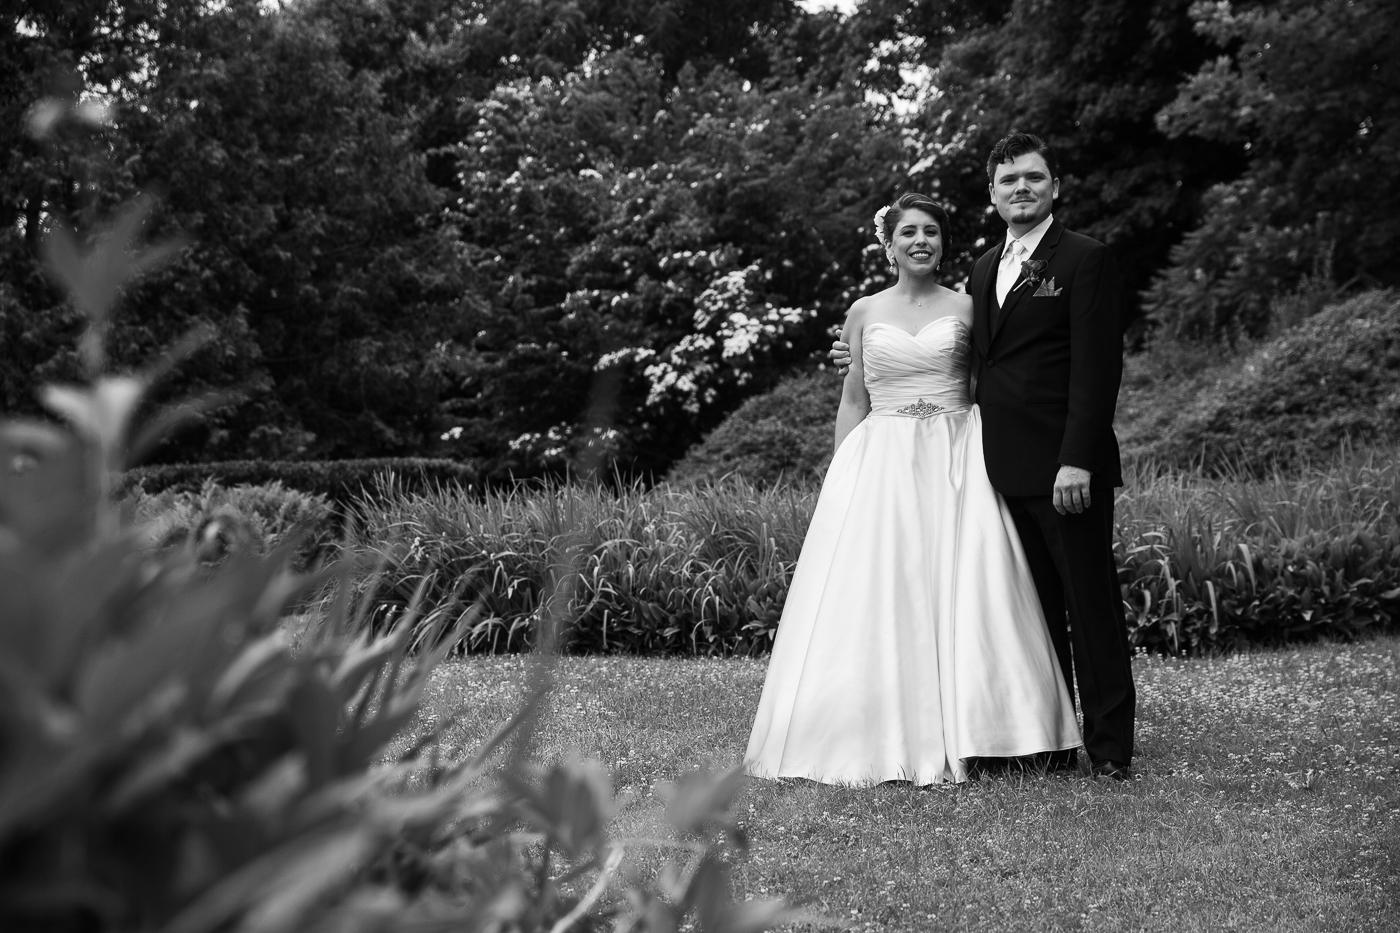 bride and groom posing in flower garden